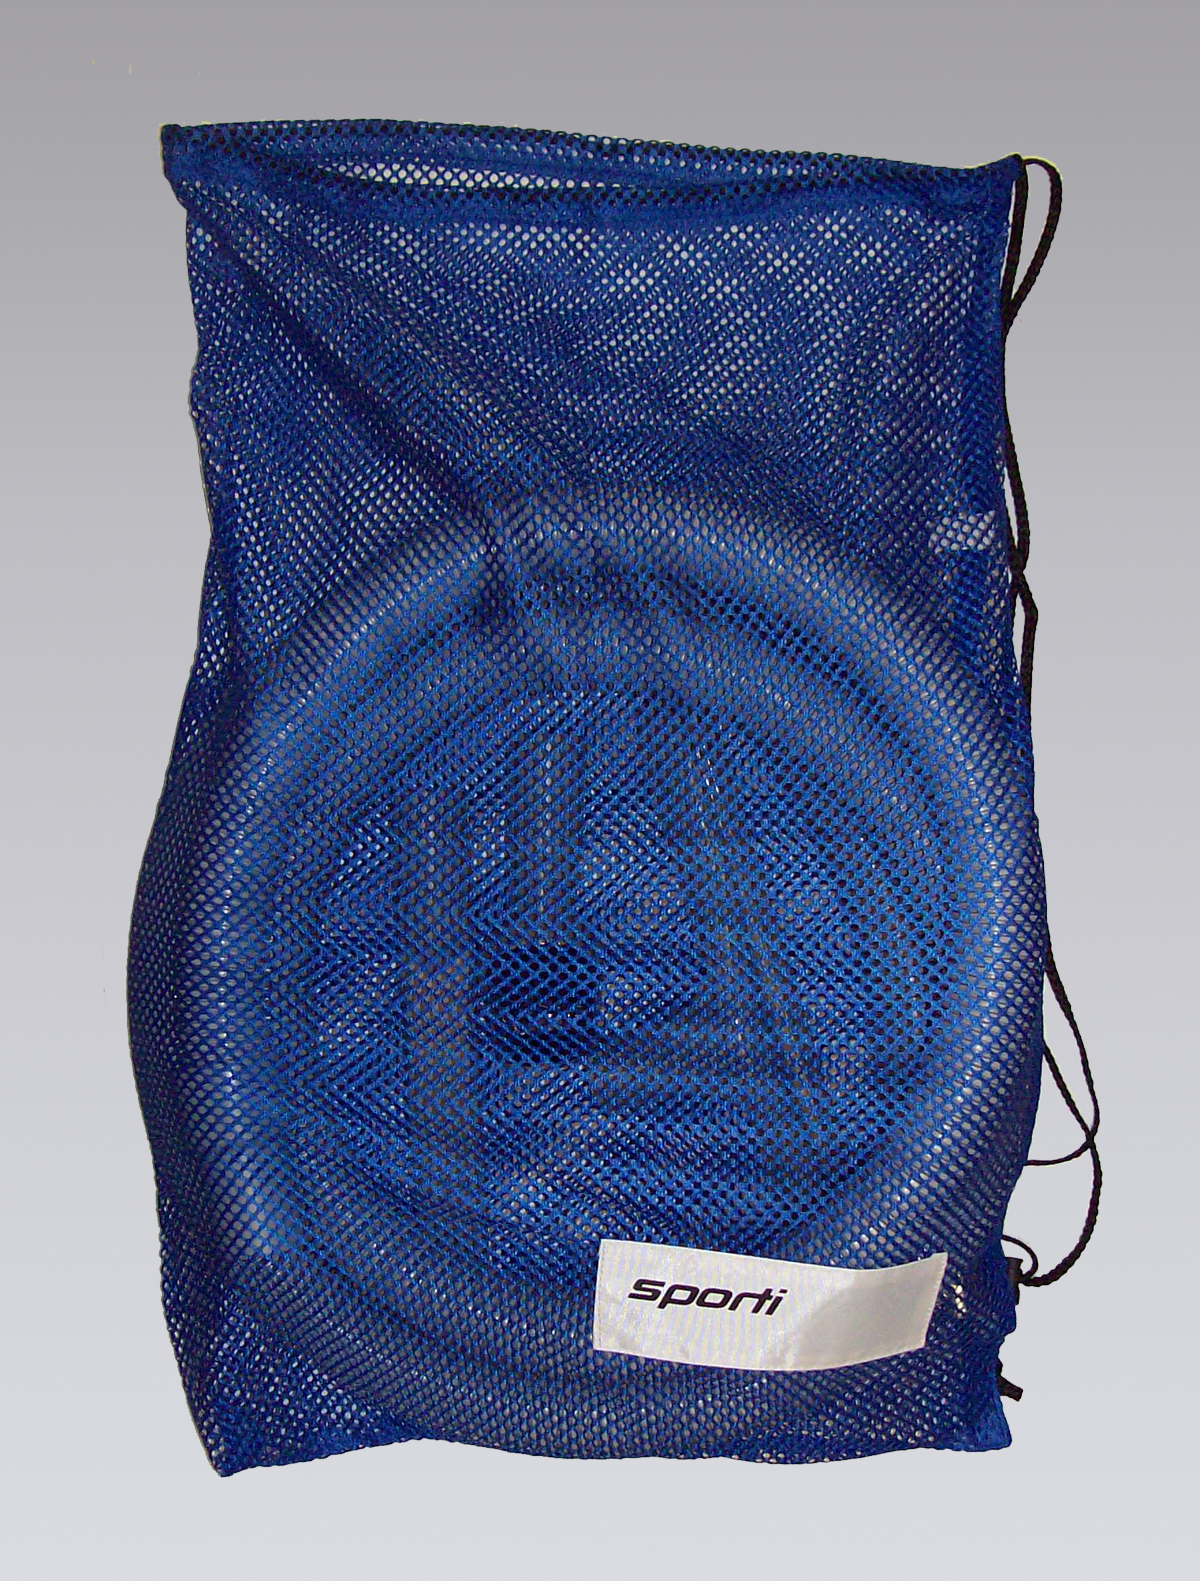 Nikro: 862101 - Tool and Hose Carrying Bag